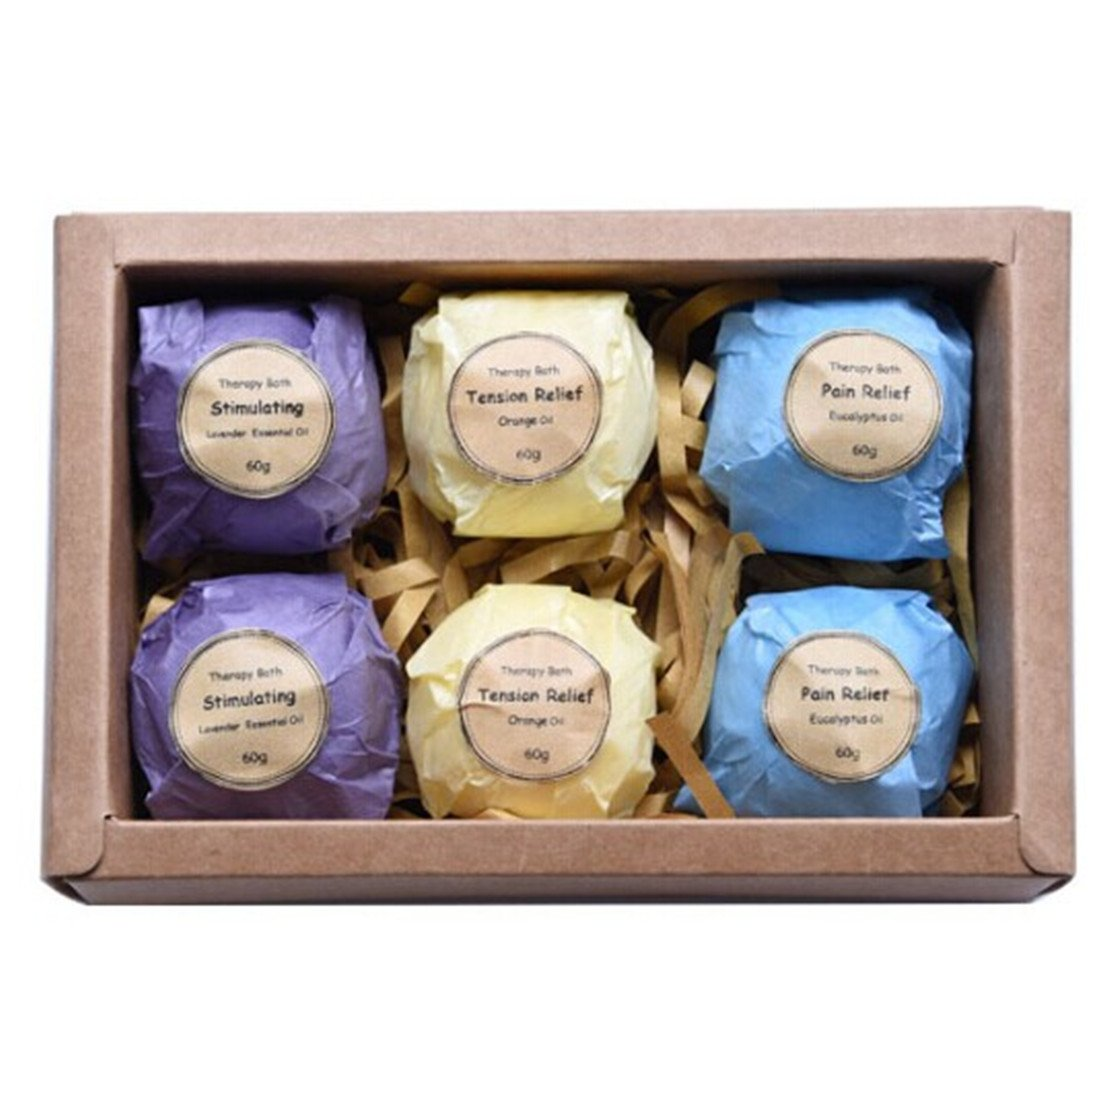 GUAngqi Bath Bombs Kit - Best Gift Ideas - Enjoyable than Bath Beads & other Bath Products